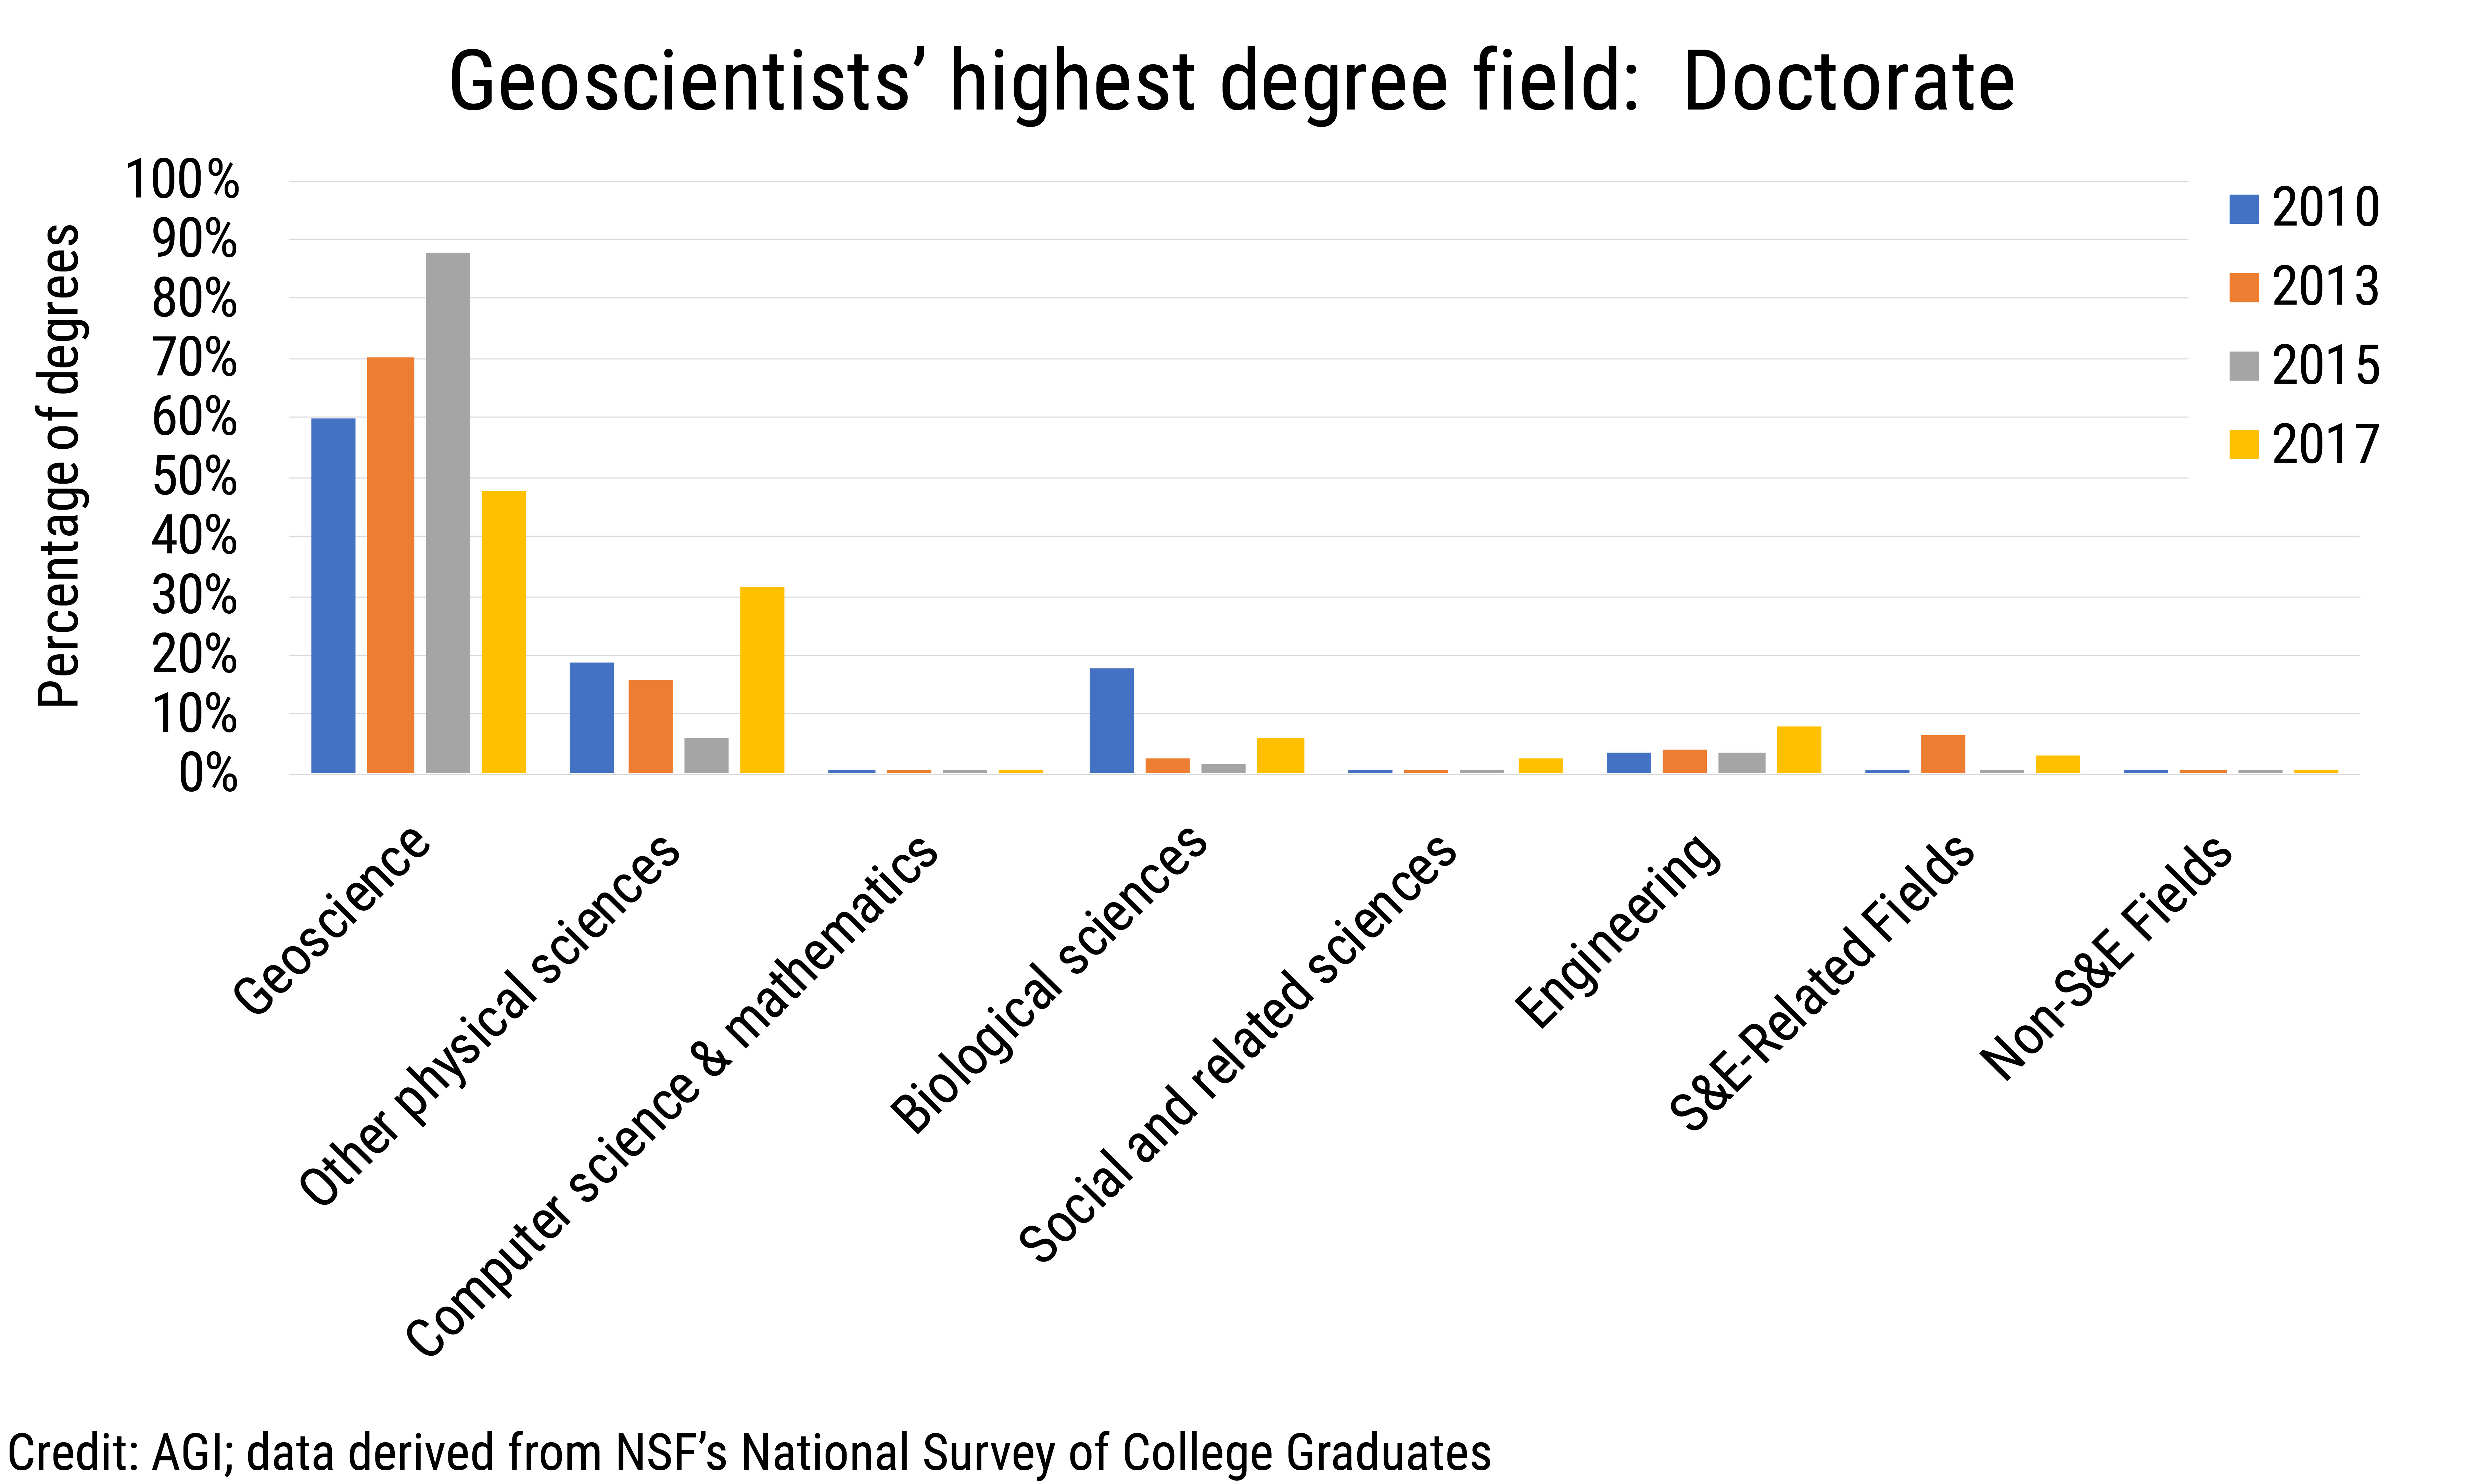 Data Brief 2019-012 chart03: Geoscientists' highest degree field: Doctorate (credit: AGI; data derived from NSF NSCG)